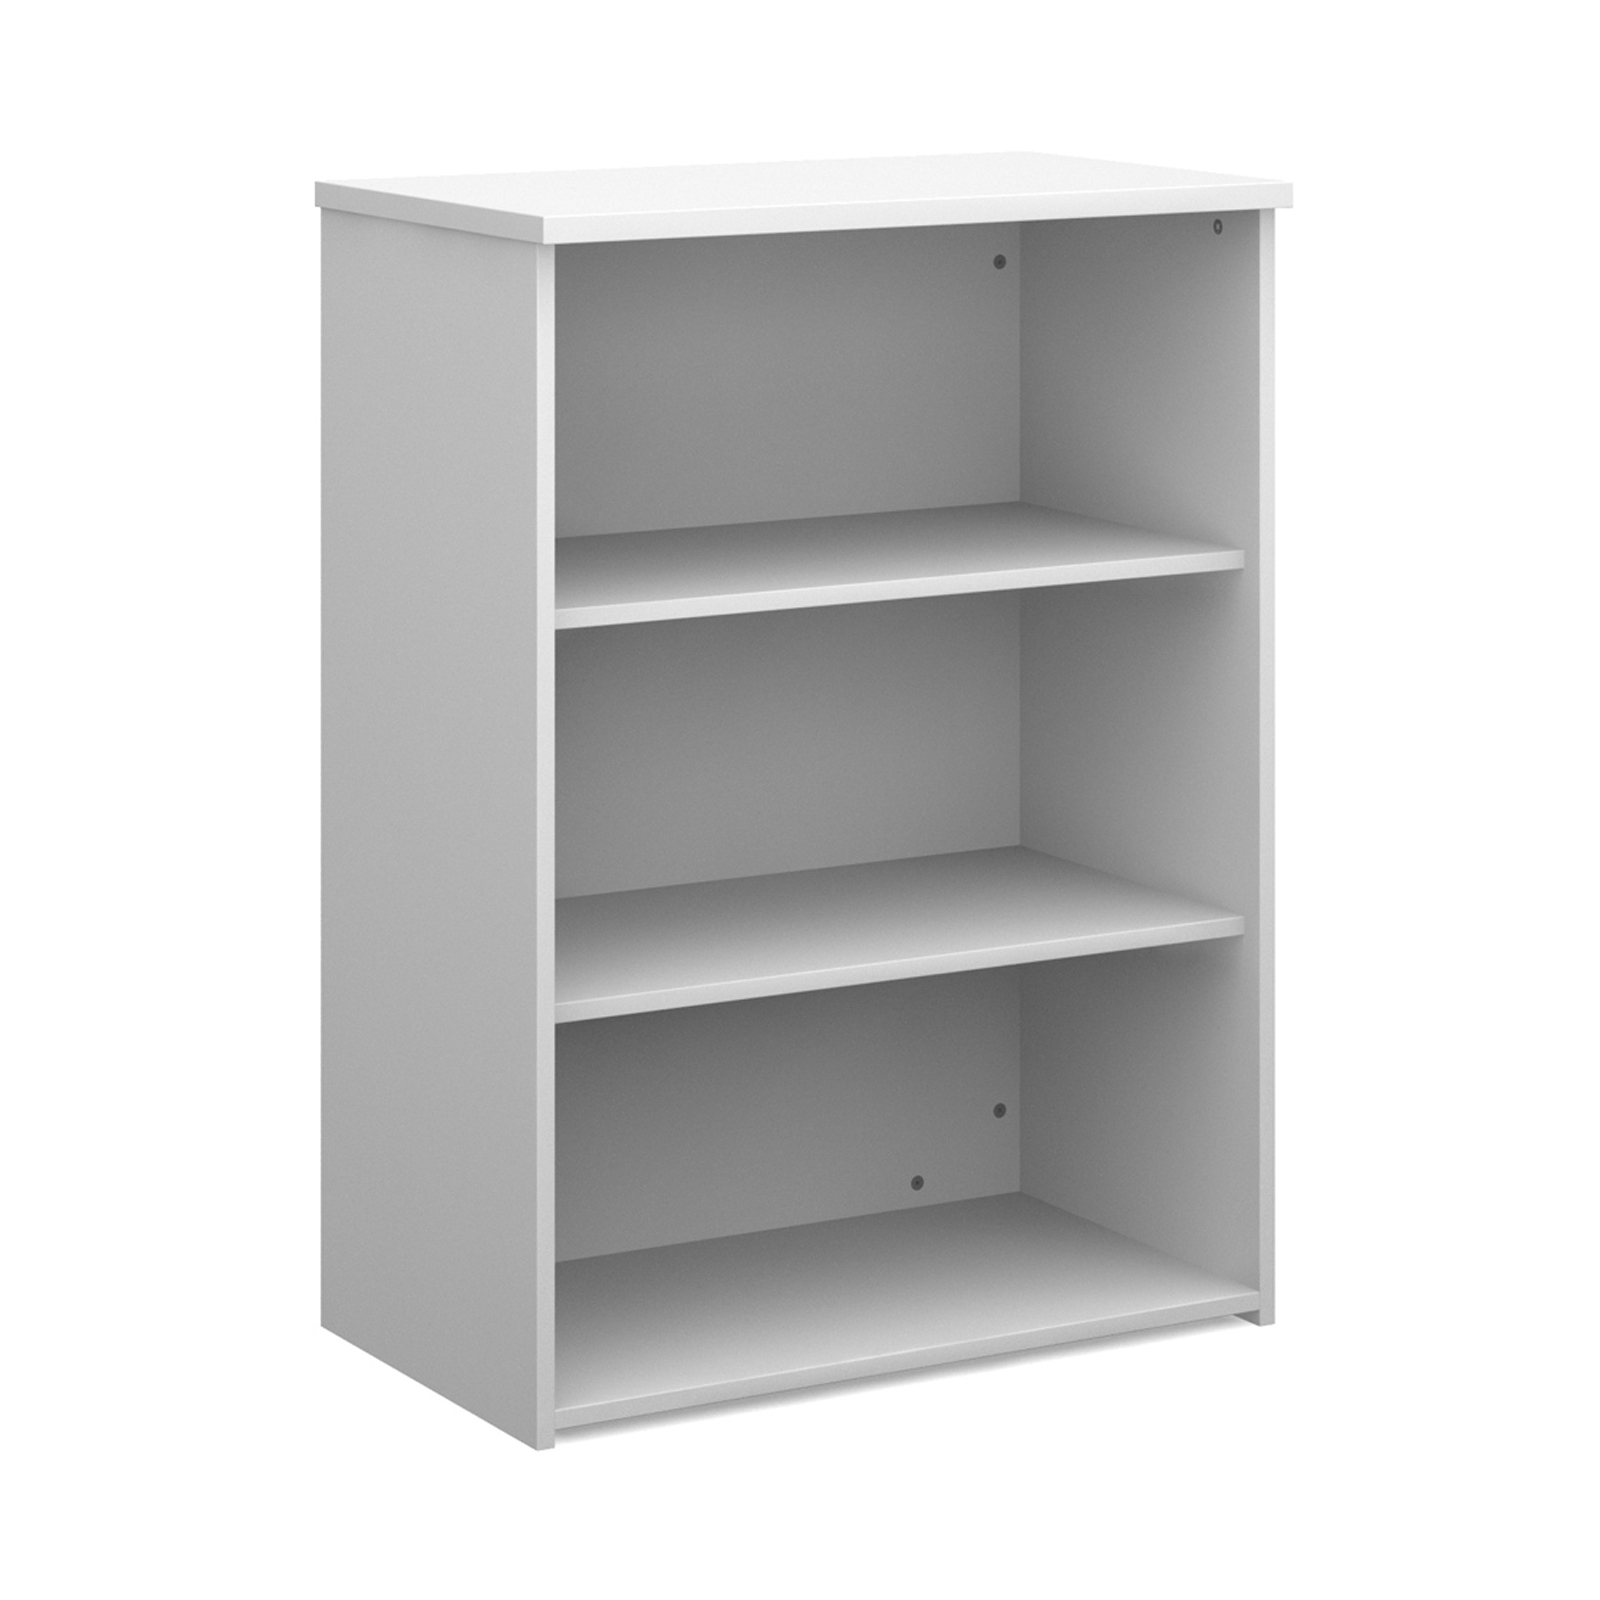 Up To 1200mm High Universal bookcase 1090mm high with 2 shelves - white